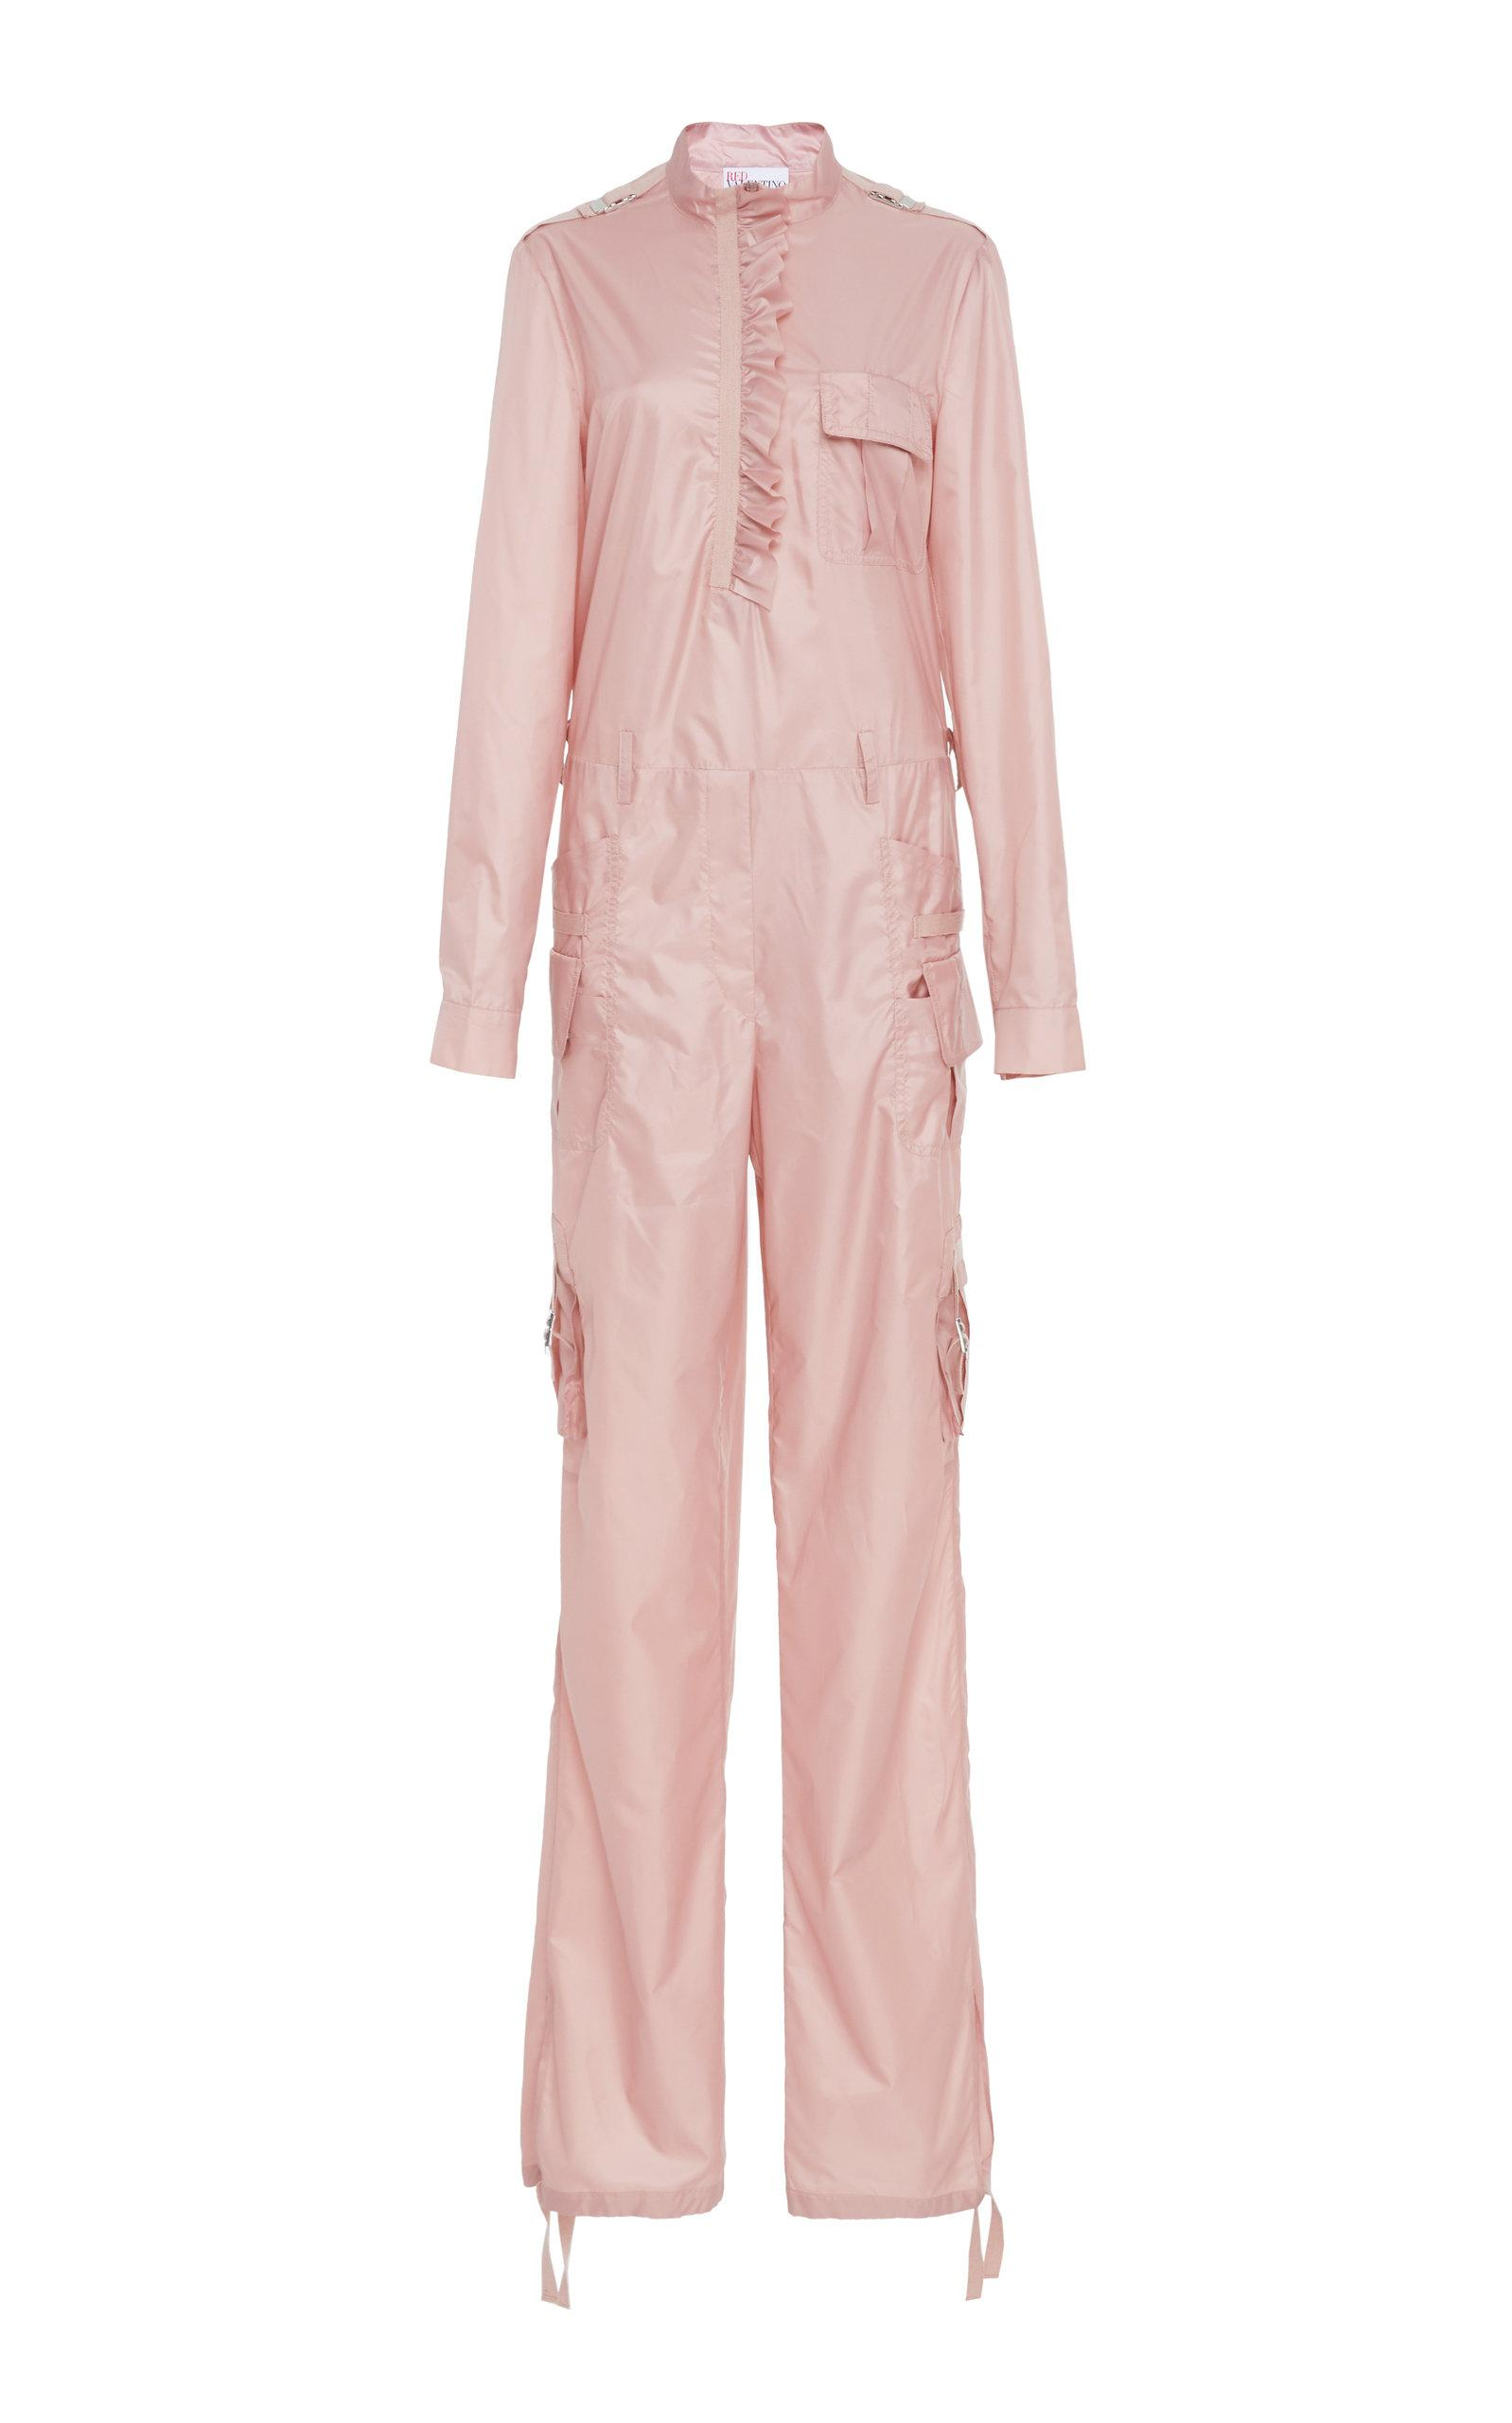 798b04c784 Red Valentino Soft Poli Jumpsuit In Pink